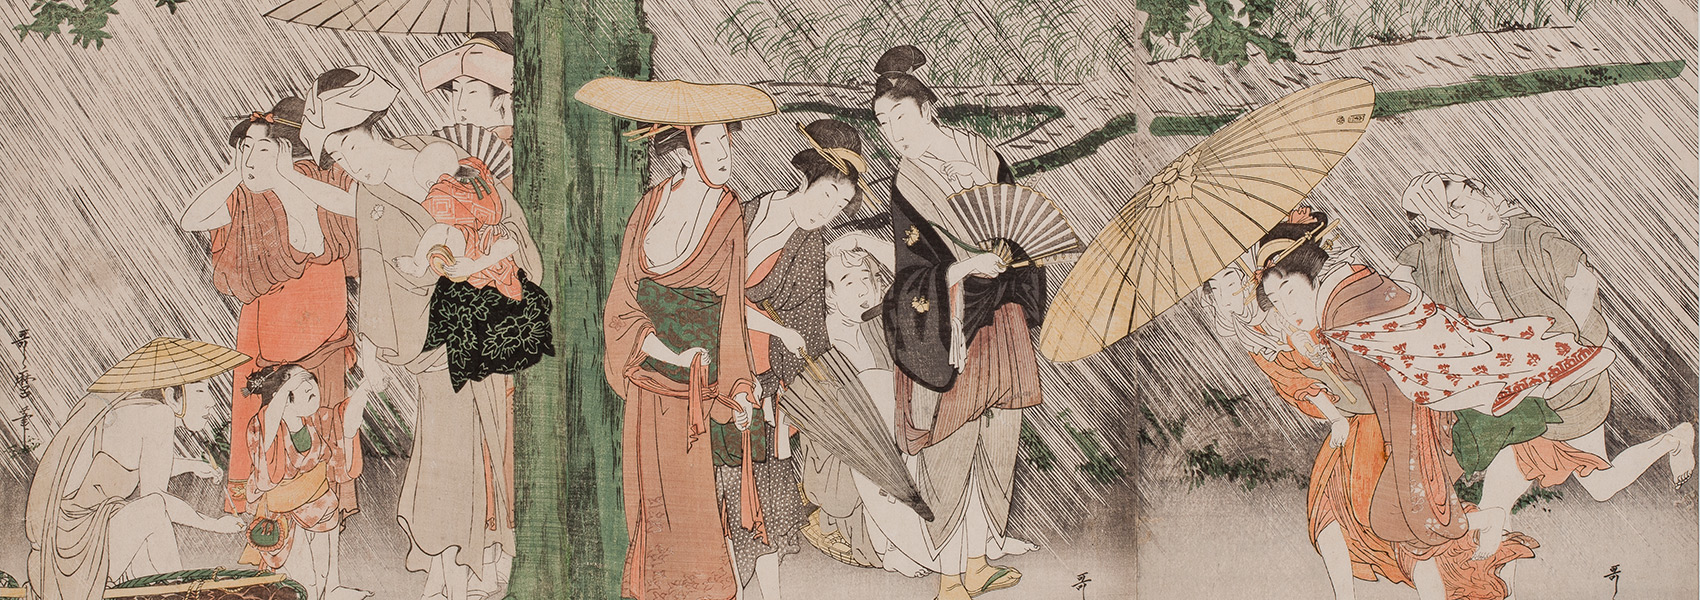 Kitagawa Utamaro, Taking Shelter from a Sudden Summer Shower under a Huge Tree, early 1790s